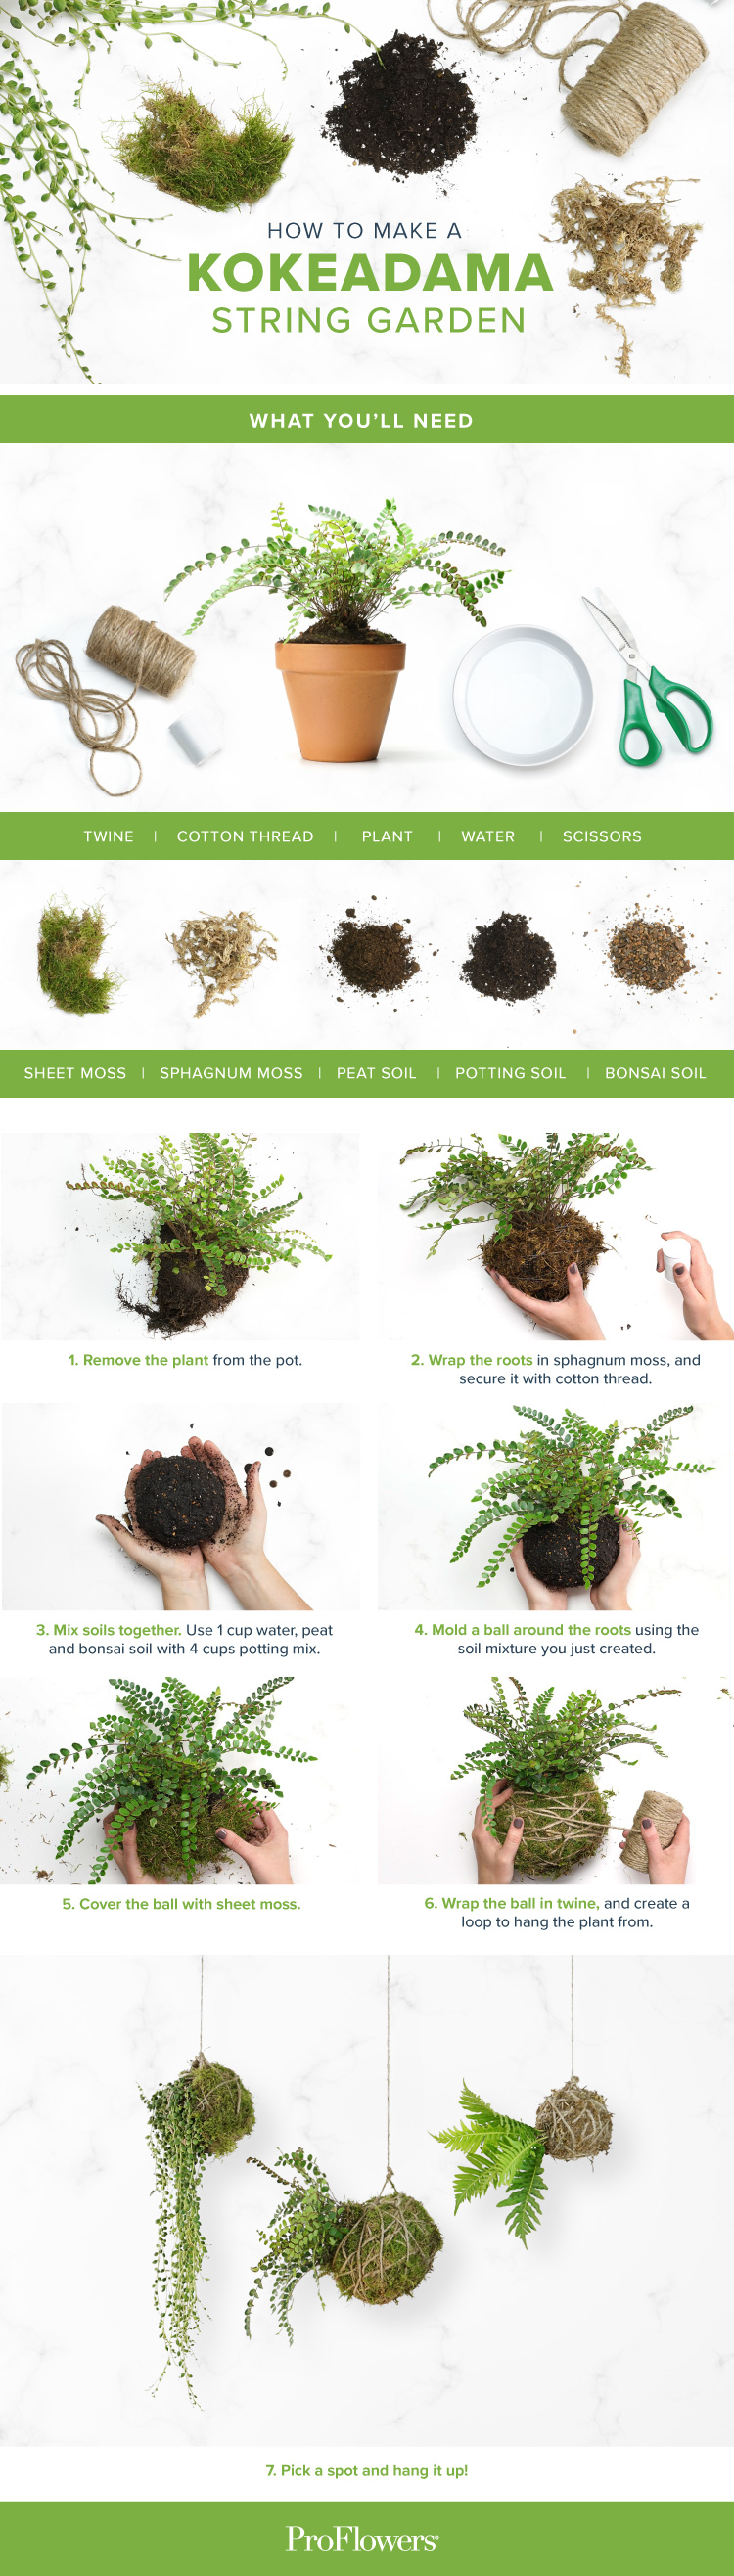 DIY-kokedama-string-garden-sharable.jpg